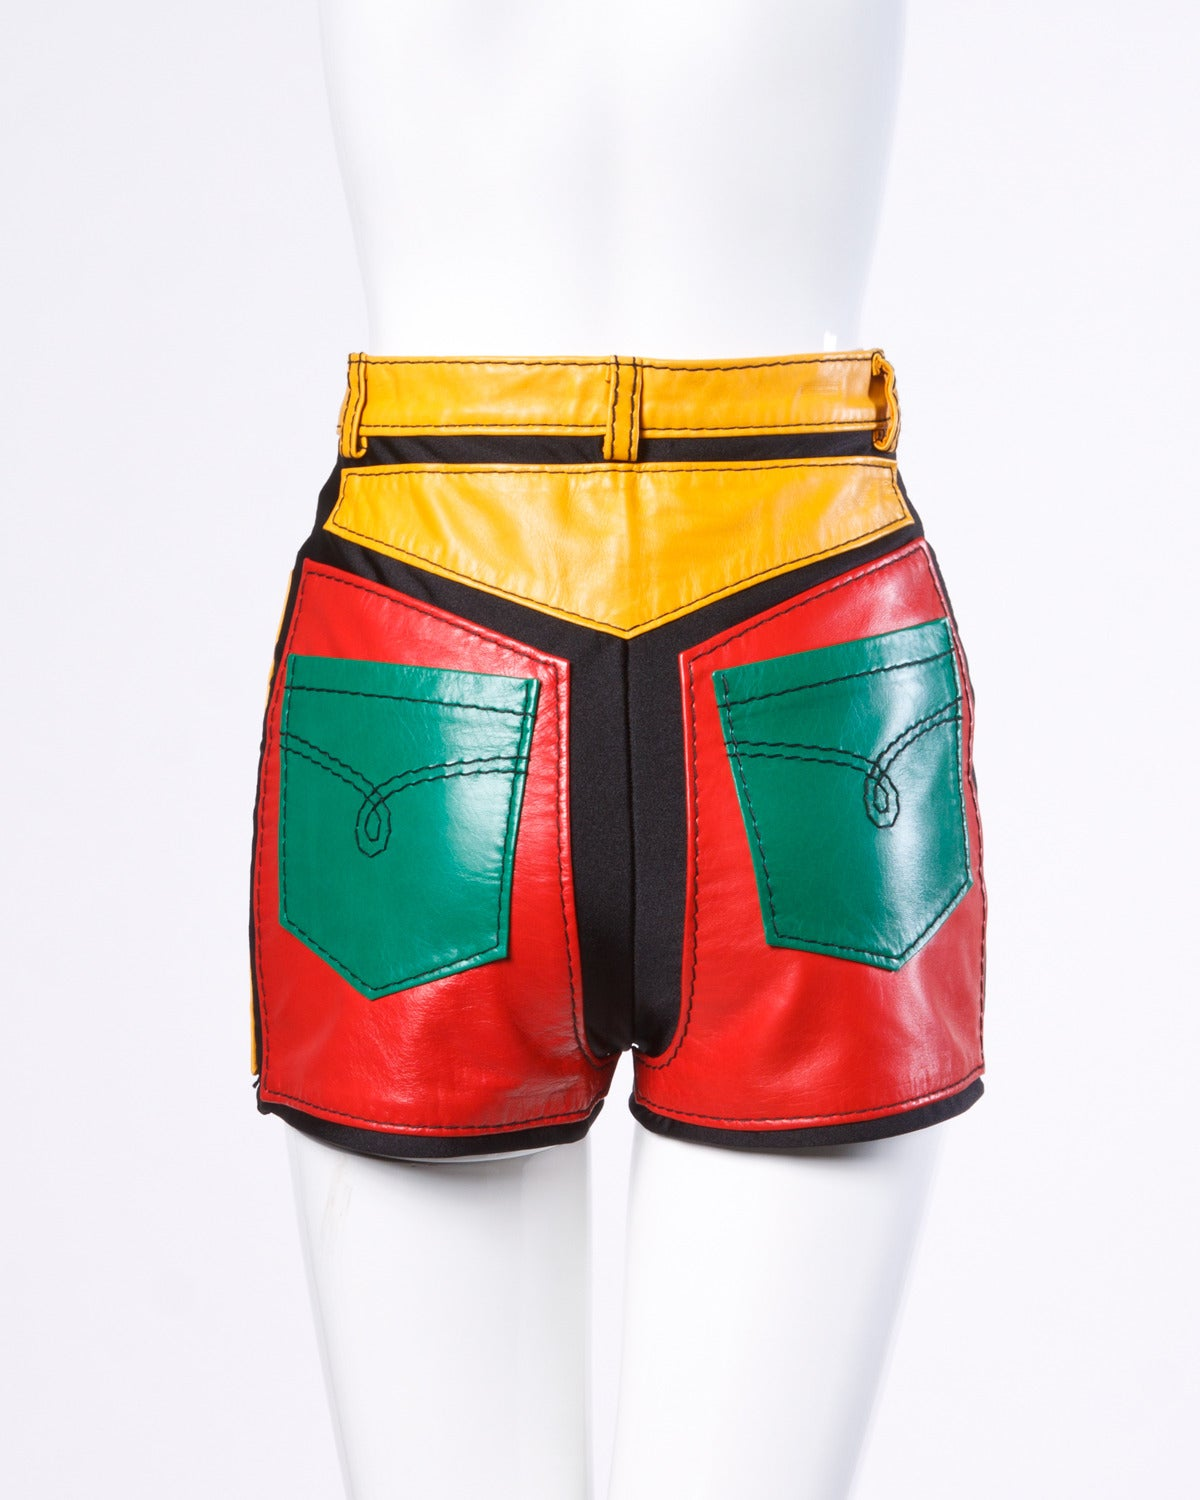 1993 Unworn Moschino Leather Color Block High Waist Hot Pants / Shorts 3